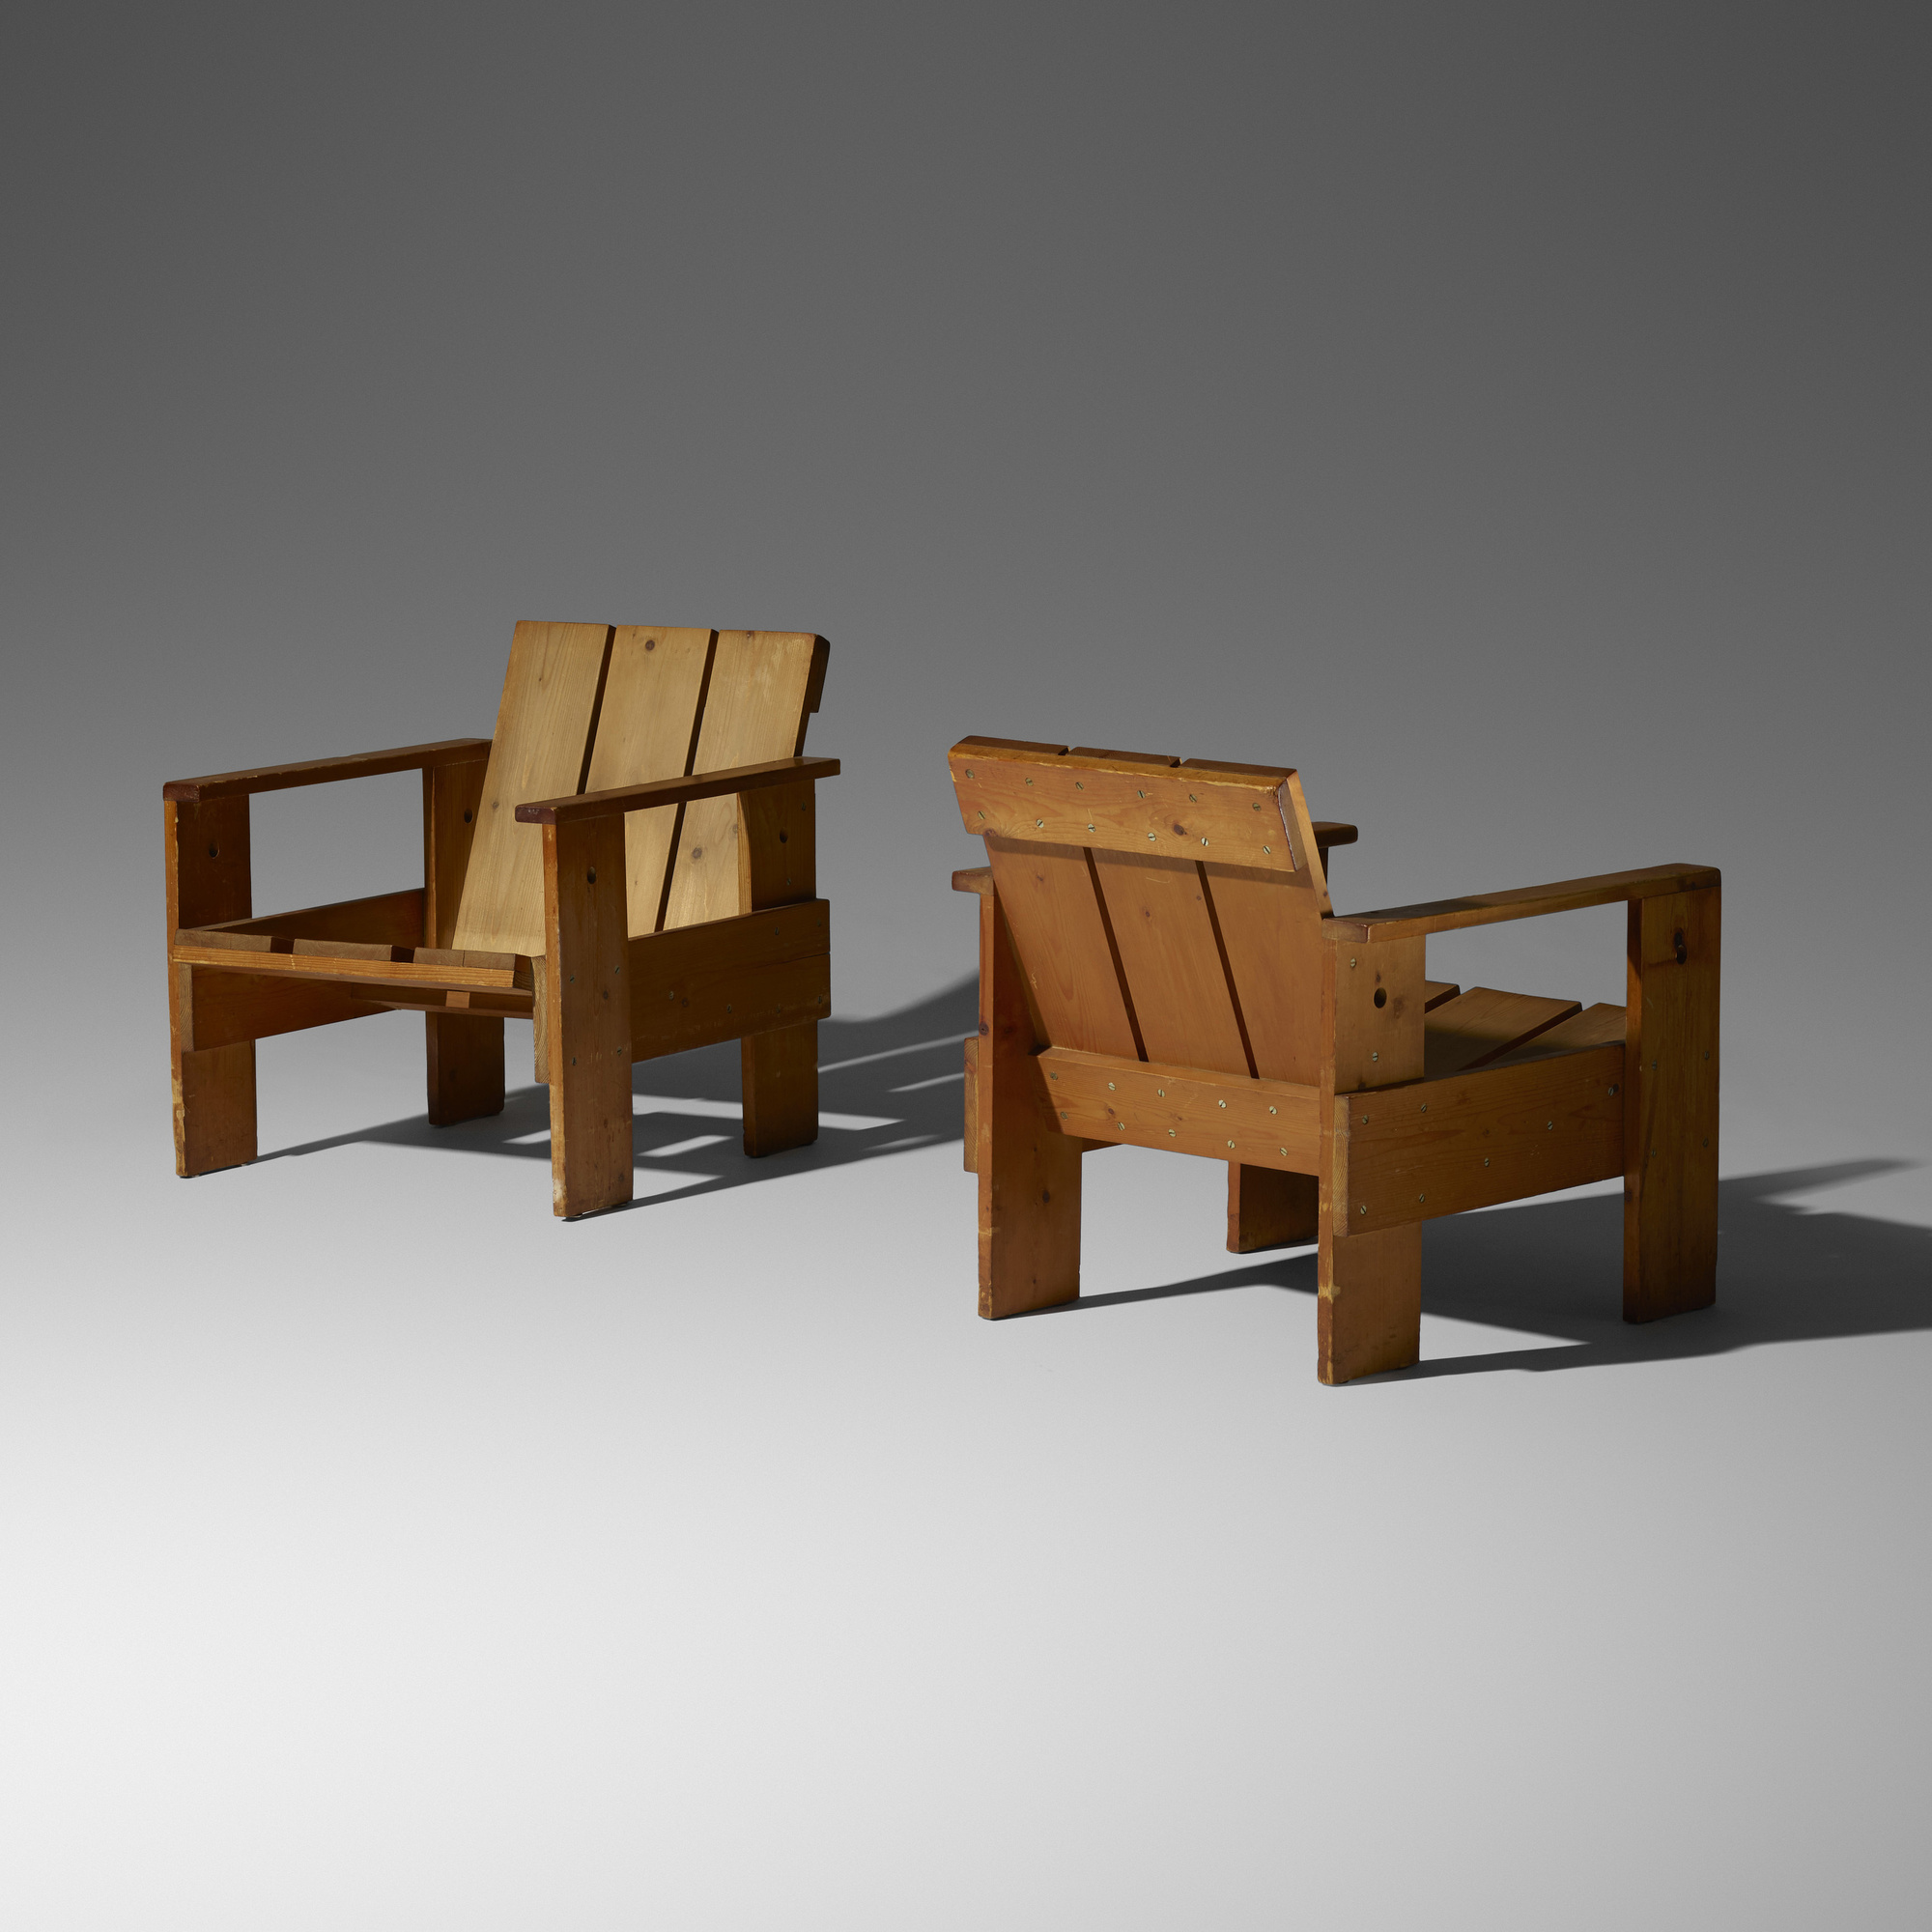 Outstanding 29 Gerrit Rietveld Crate Chairs Pair The Boyd Download Free Architecture Designs Scobabritishbridgeorg